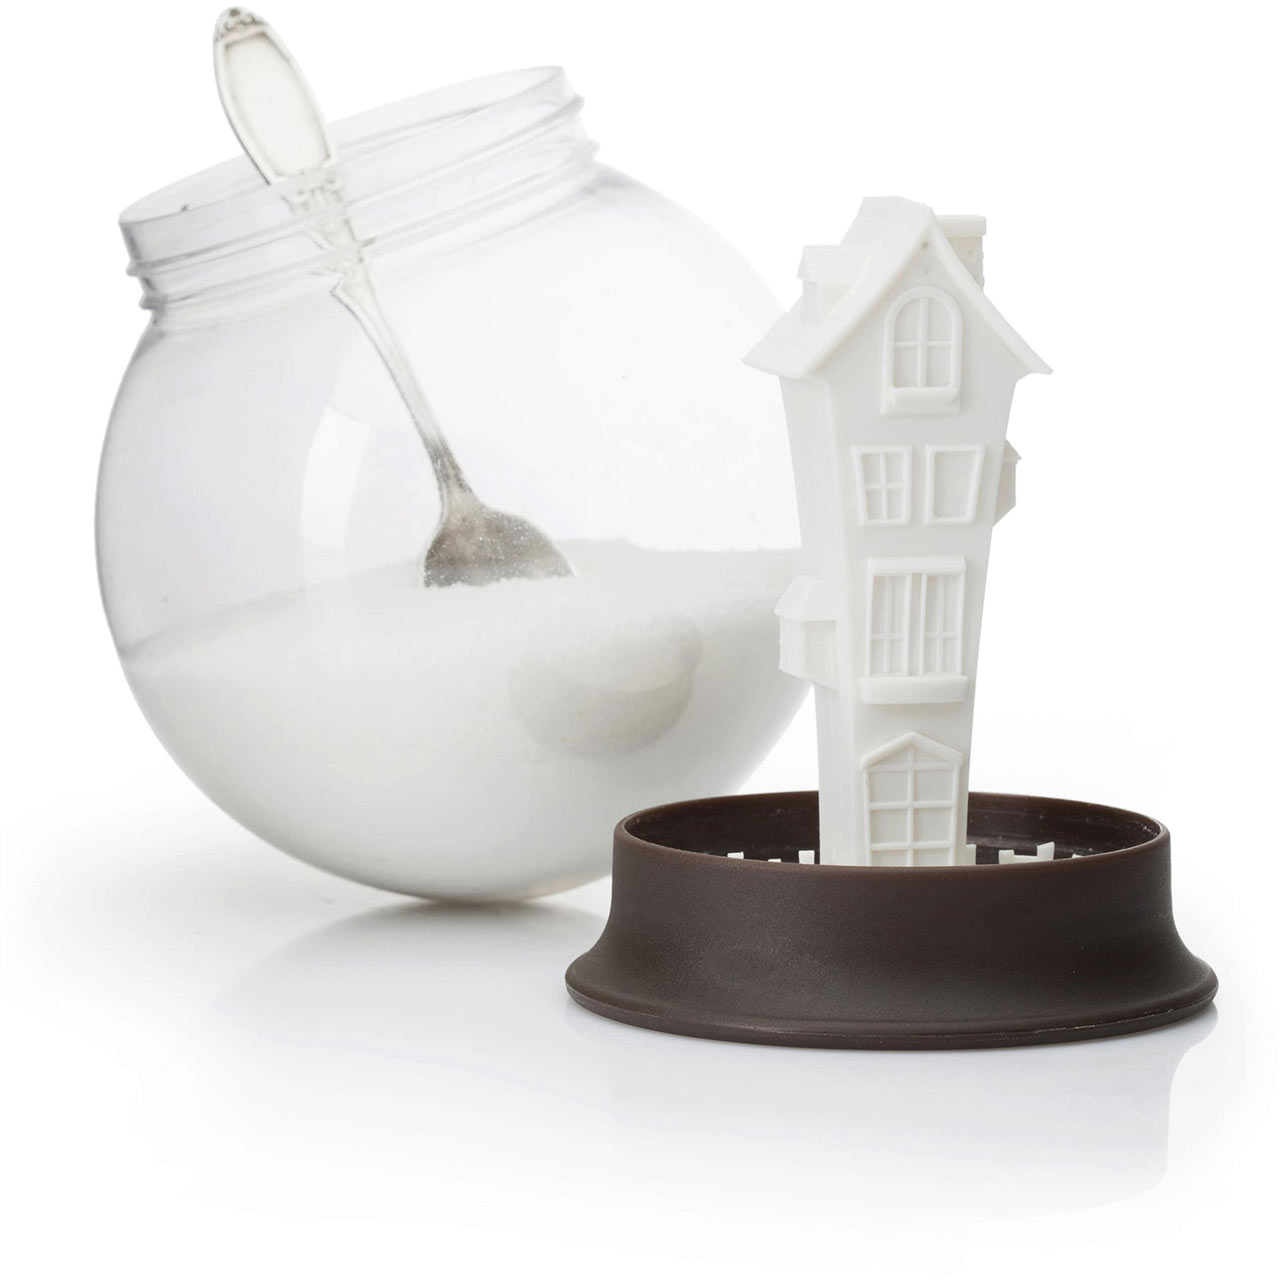 Fairytale Sugar Hose Sugar Bowl by Peleg | the design gift shop